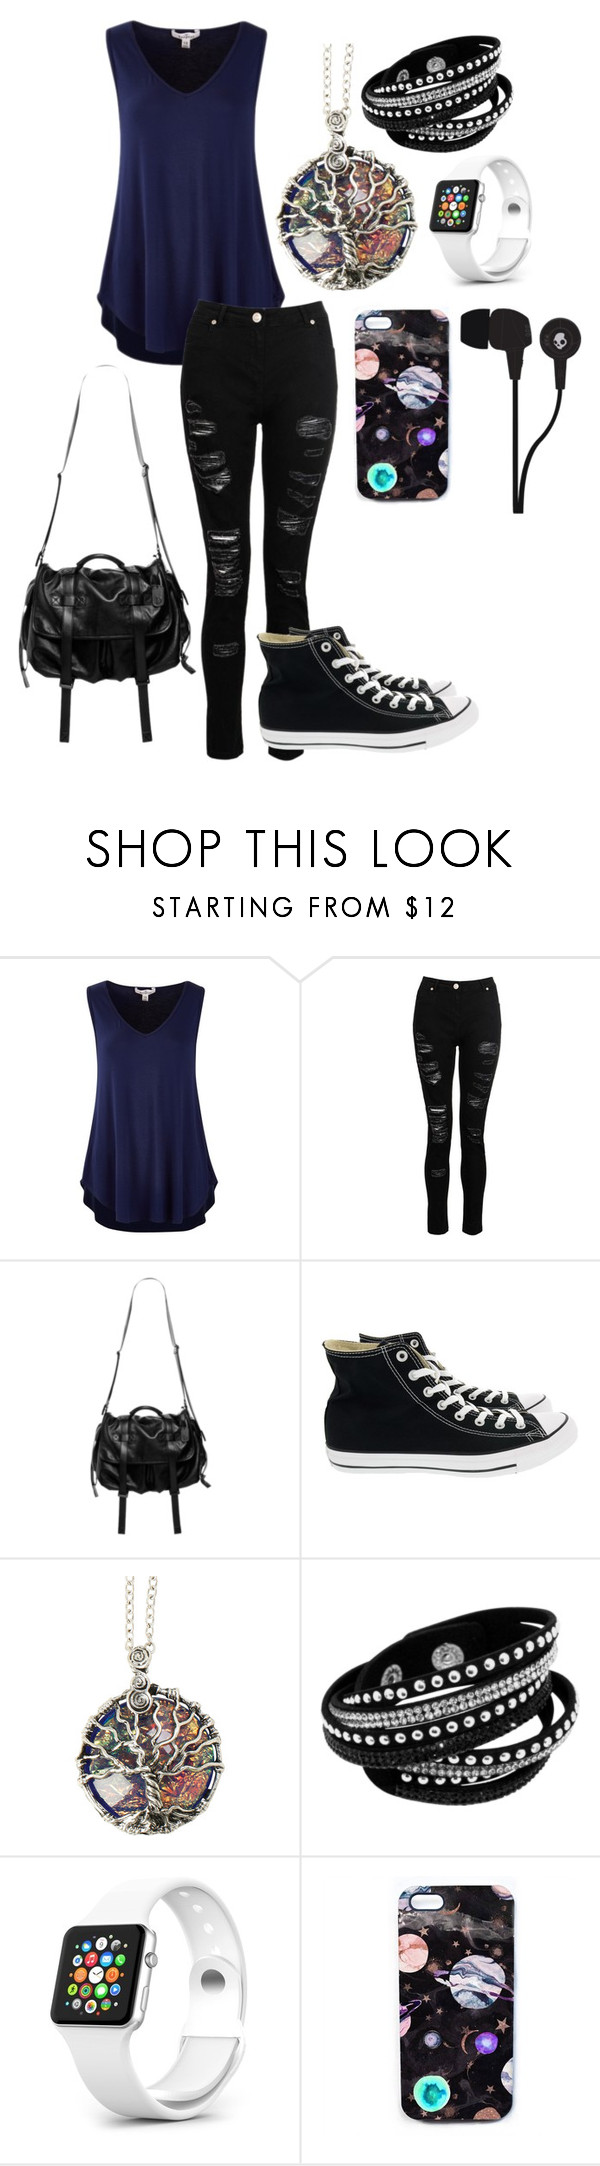 """Casual Chic"" by mimi14senpai ❤ liked on Polyvore featuring Natalia Brilli, Converse, Nikki Strange and Skullcandy"